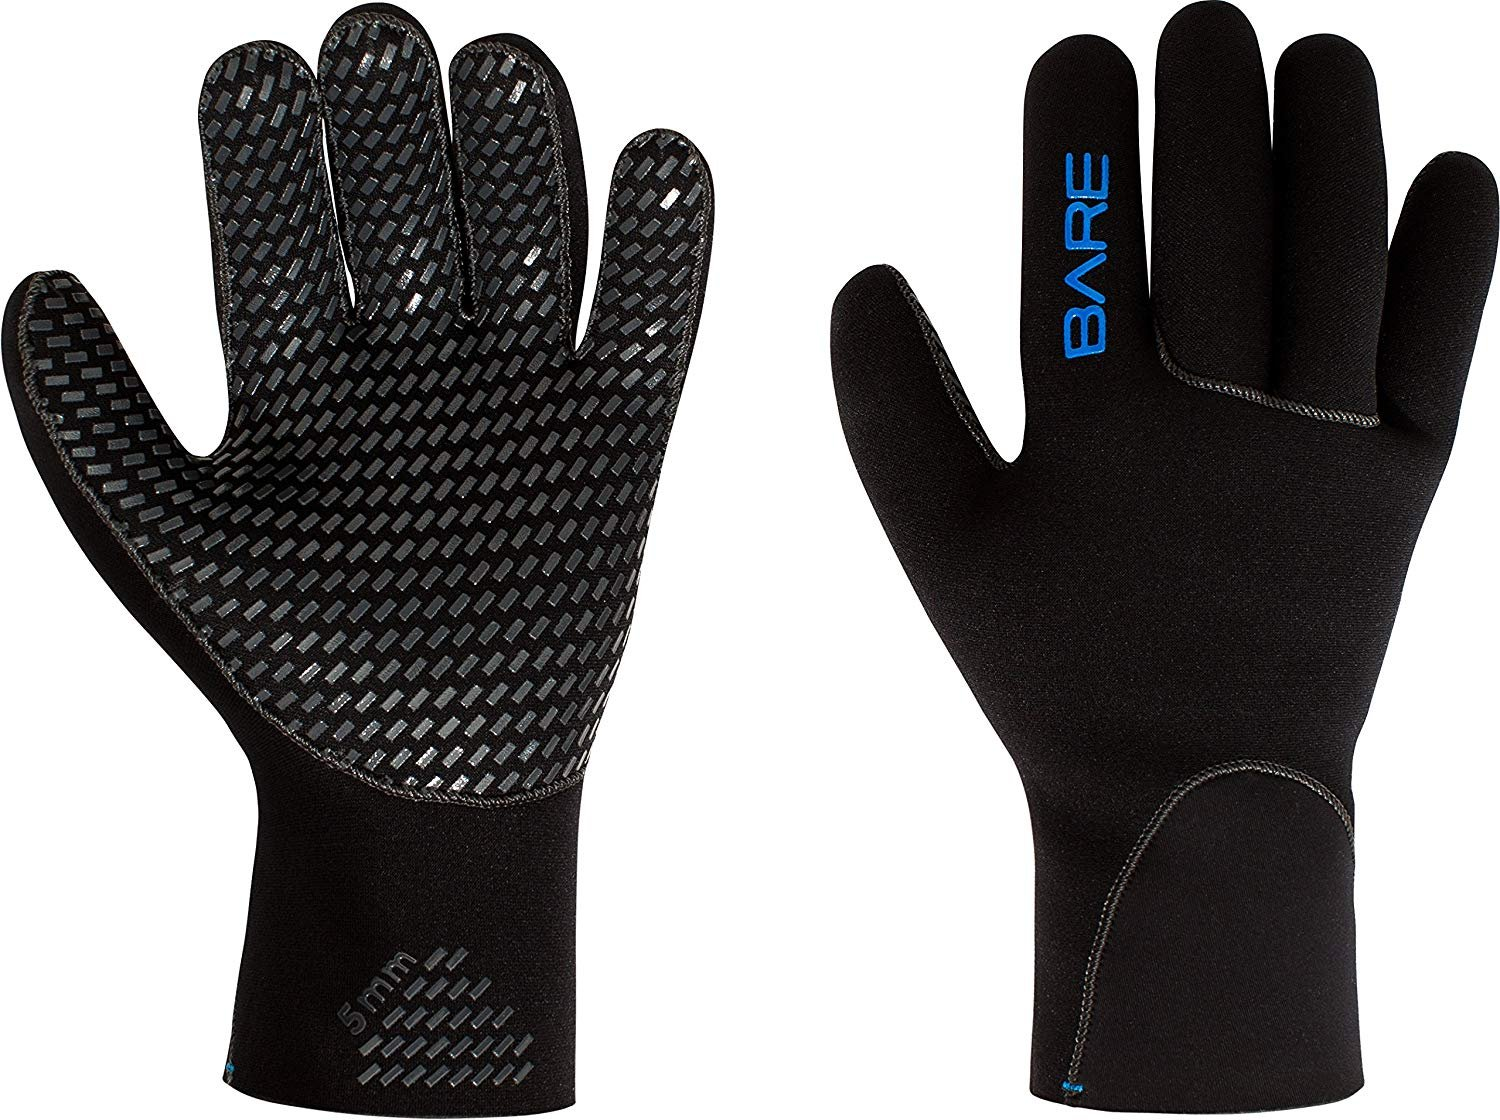 5mm BARE Glove